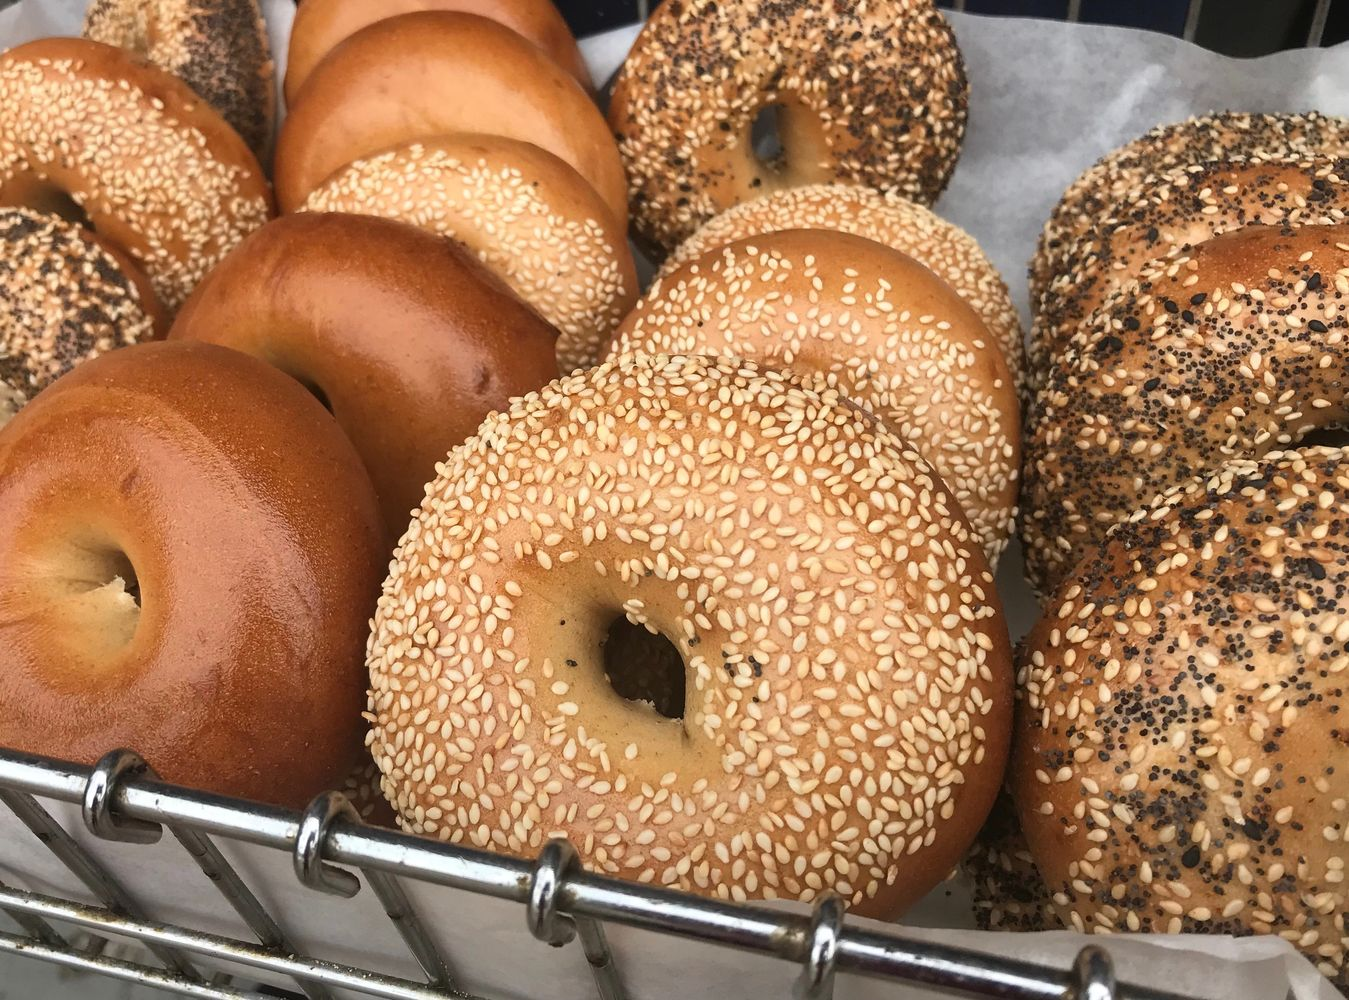 Artisan All Natural Bagels and Other Baked Goods Recipes and Formulas Custom Designed to Perfection